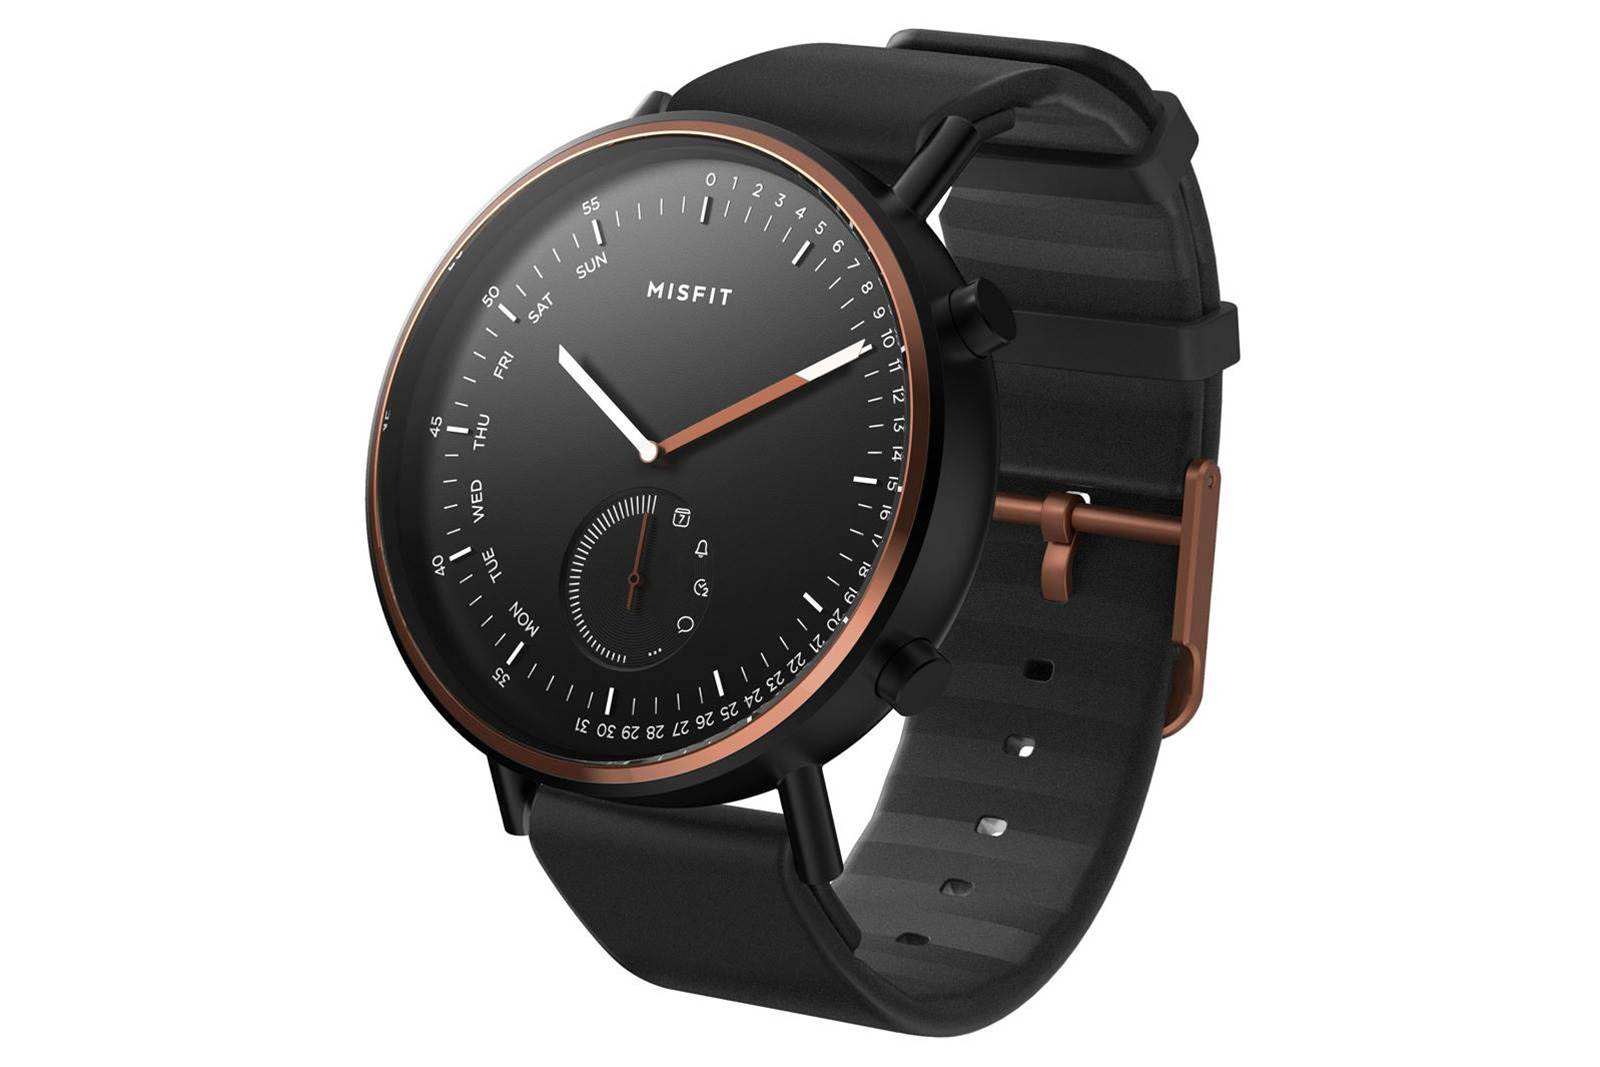 Misfit's latest hybrid smartwatch is much cleverer than it looks